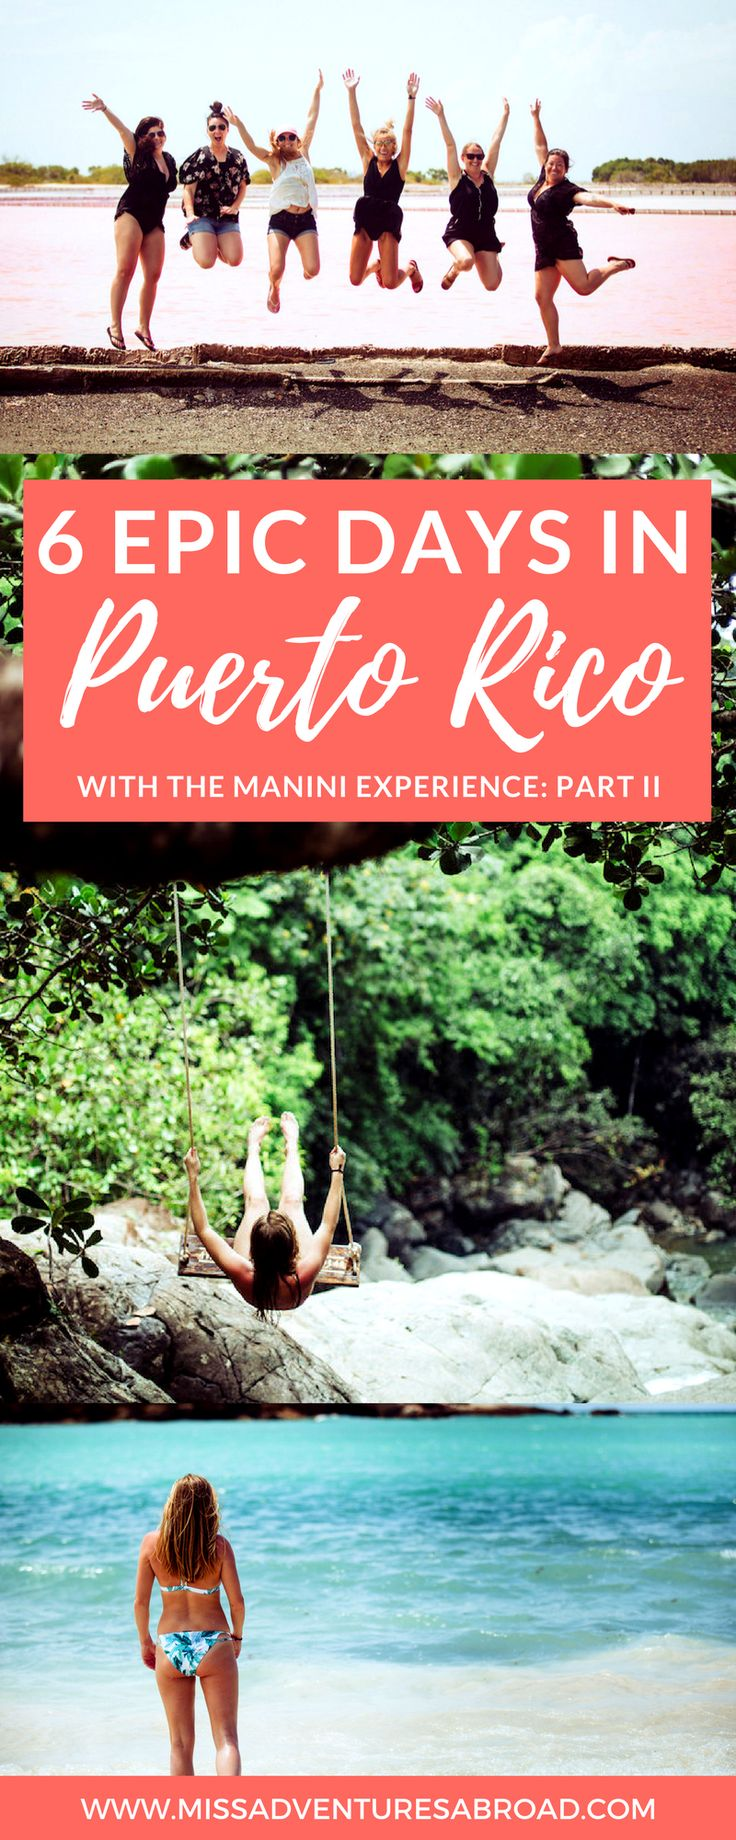 6 Amazing Days In Puerto Rico With The Manini Experience: Part 2 · Discover off-the-beaten path Puerto Rico in 6 days! Incredible hidden waterfalls, the amazing El Yunque Rainforest, mangroves, beautiful beaches and more! Puerto Rico is the perfect island paradise for travelers looking for fun and adventure!